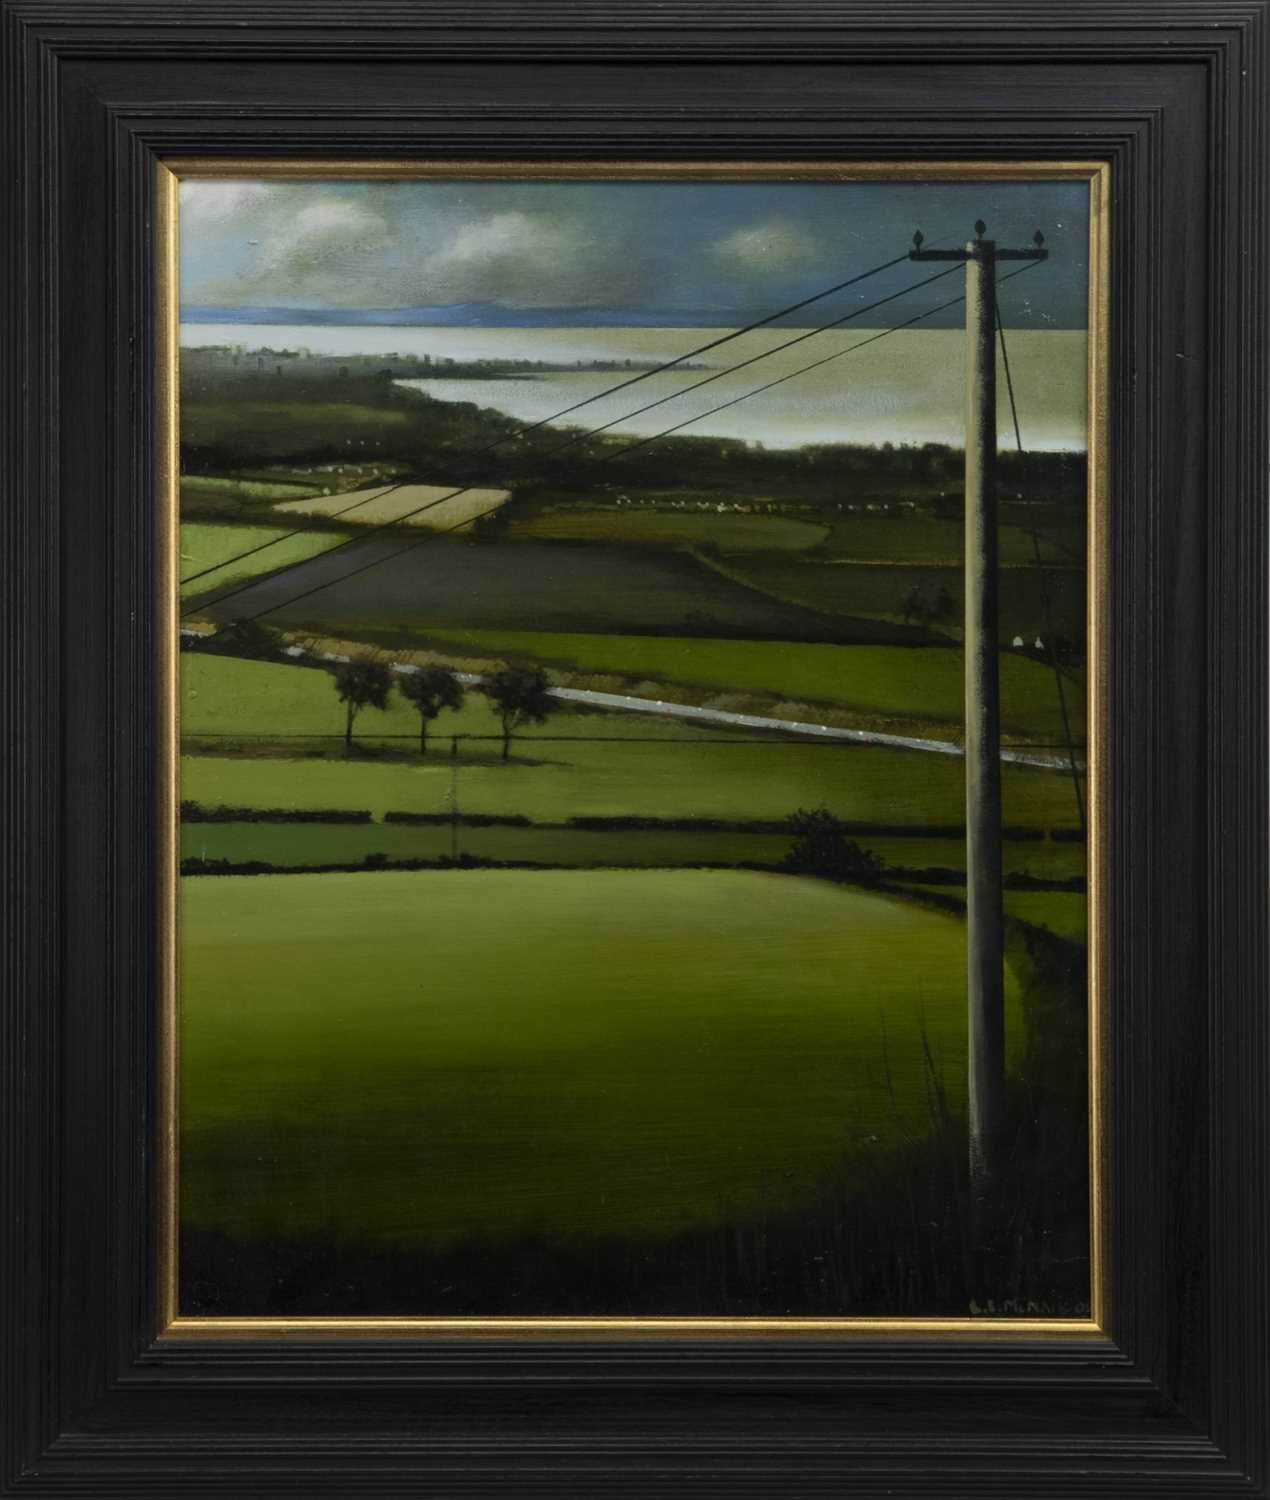 Lot 552 - THE OVERLOOK, AN OIL BY LOUIS SINCLAIR MCNALLY